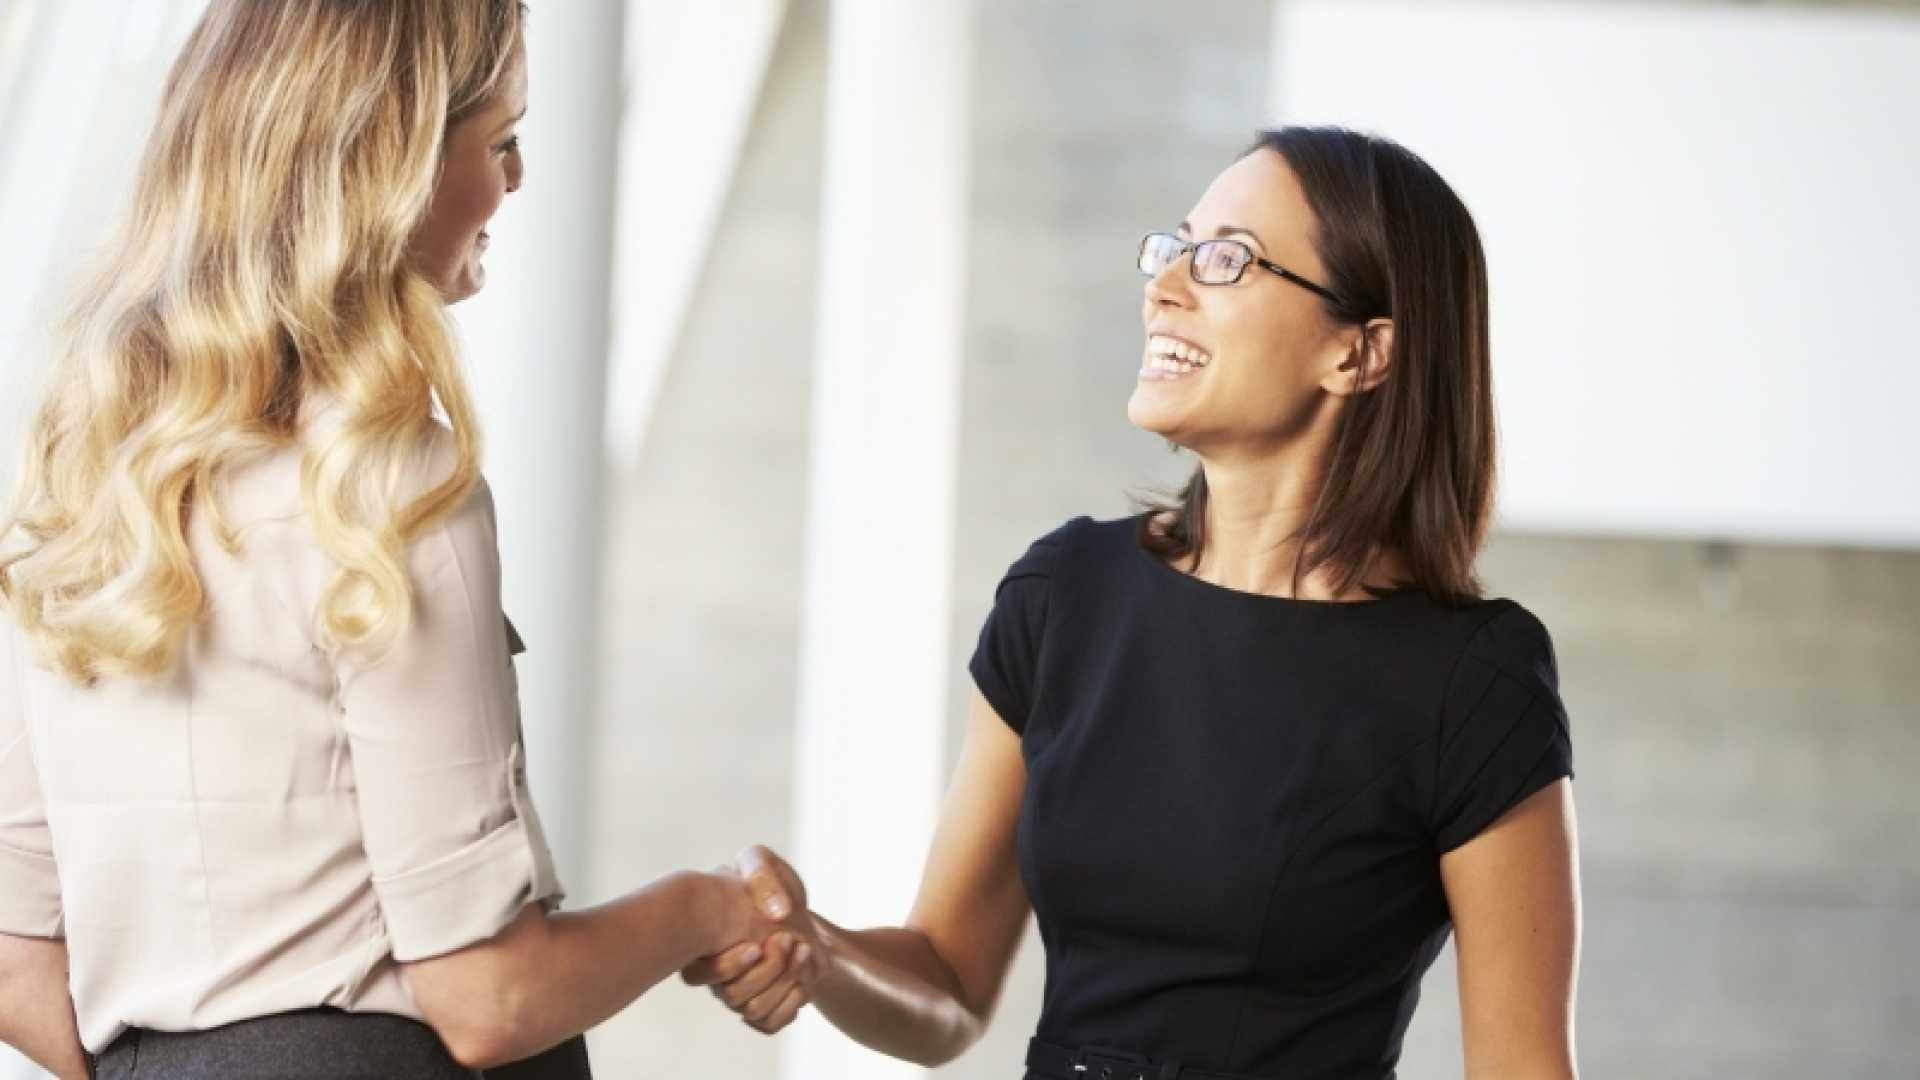 6 Surefire Tactics That Will Ignite Client Referrals